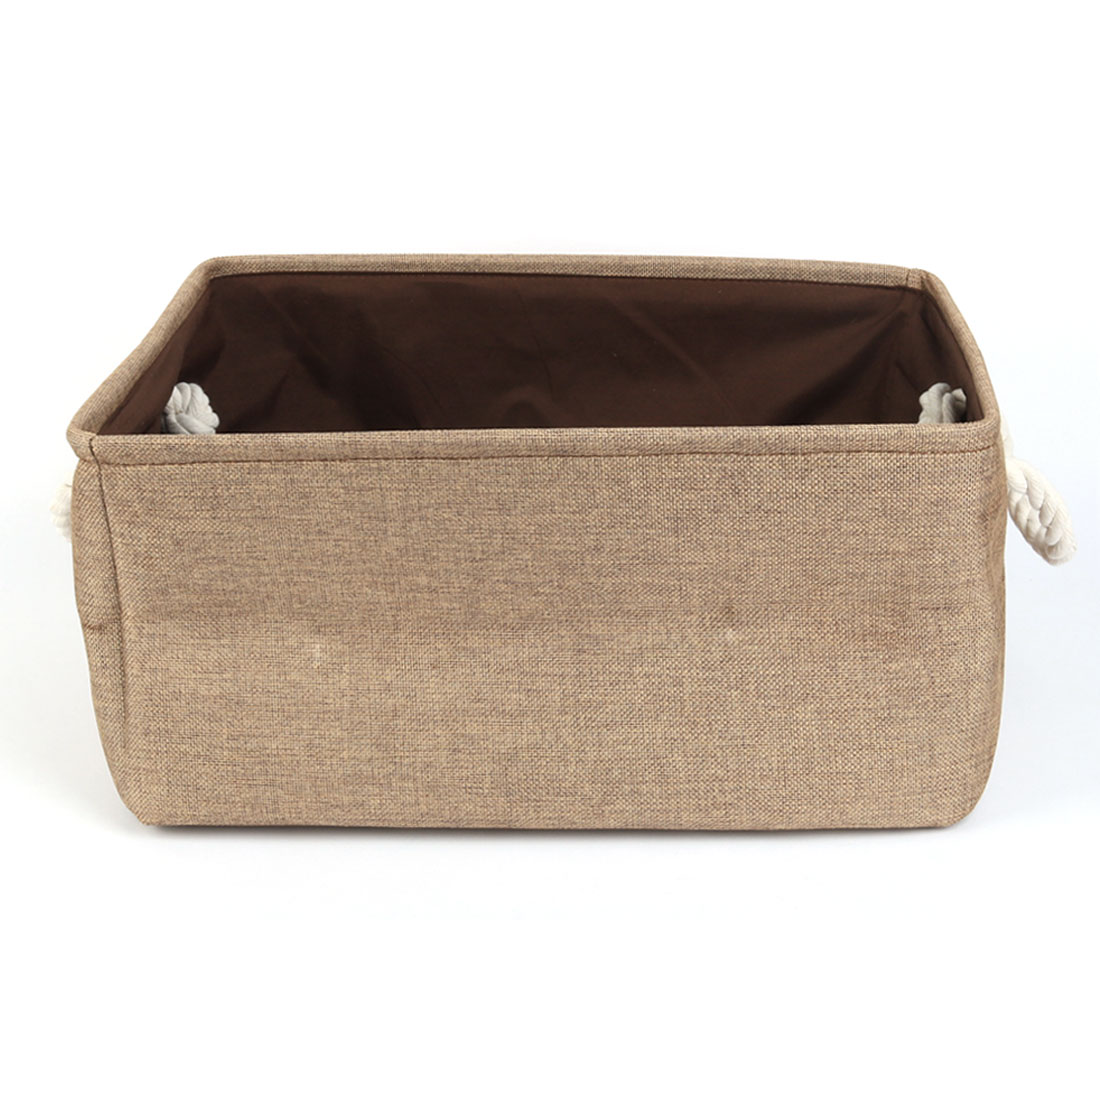 Home Fabric Storage Bin Basket Closet Clothes Box Container Organizer Coffee Color